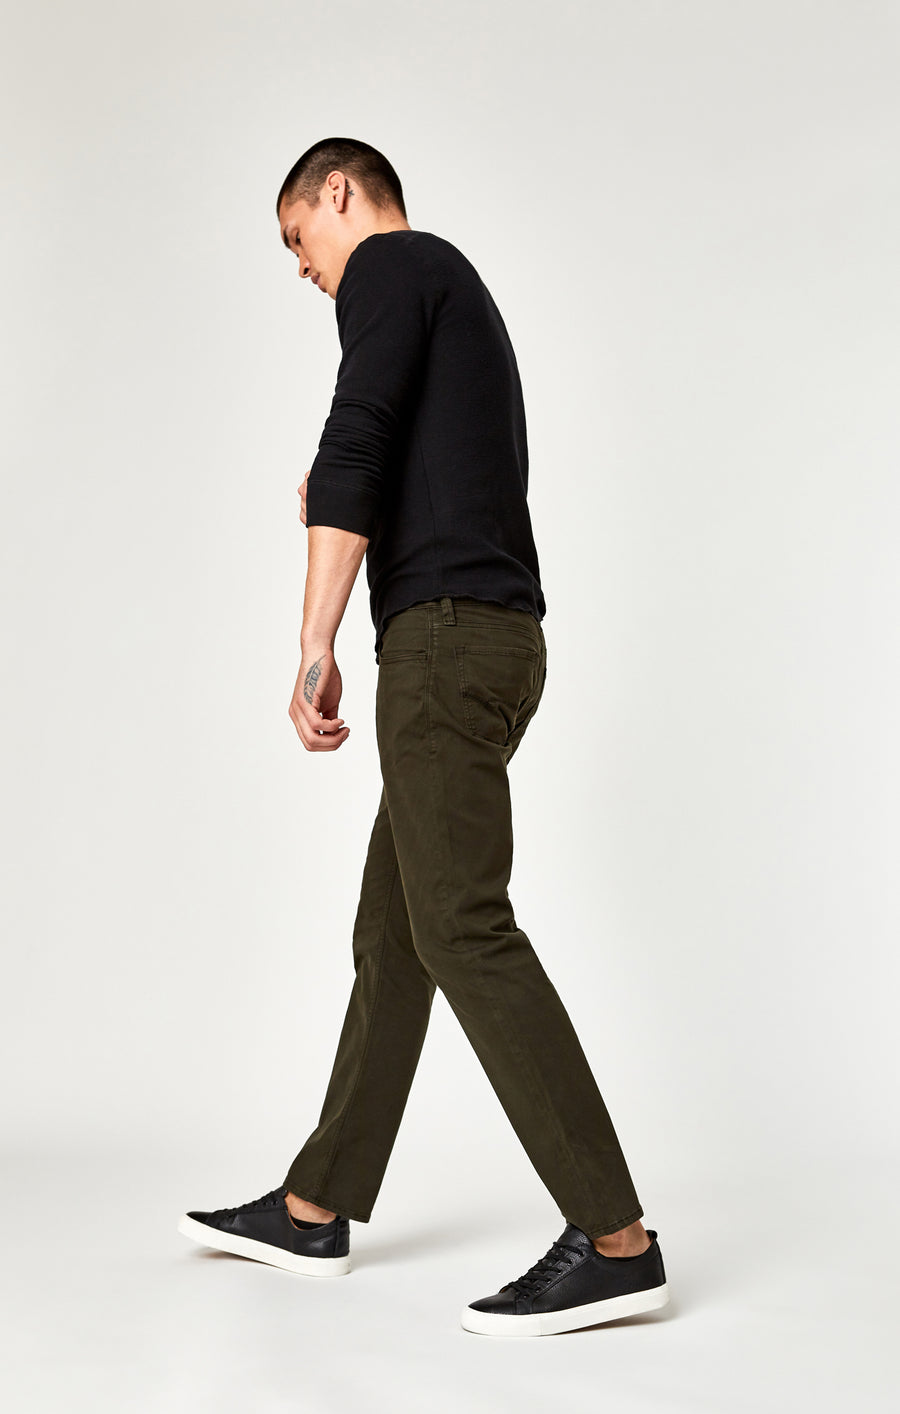 ZACH STRAIGHT LEG PANTS IN DARK GREEN TWILL - Mavi Jeans